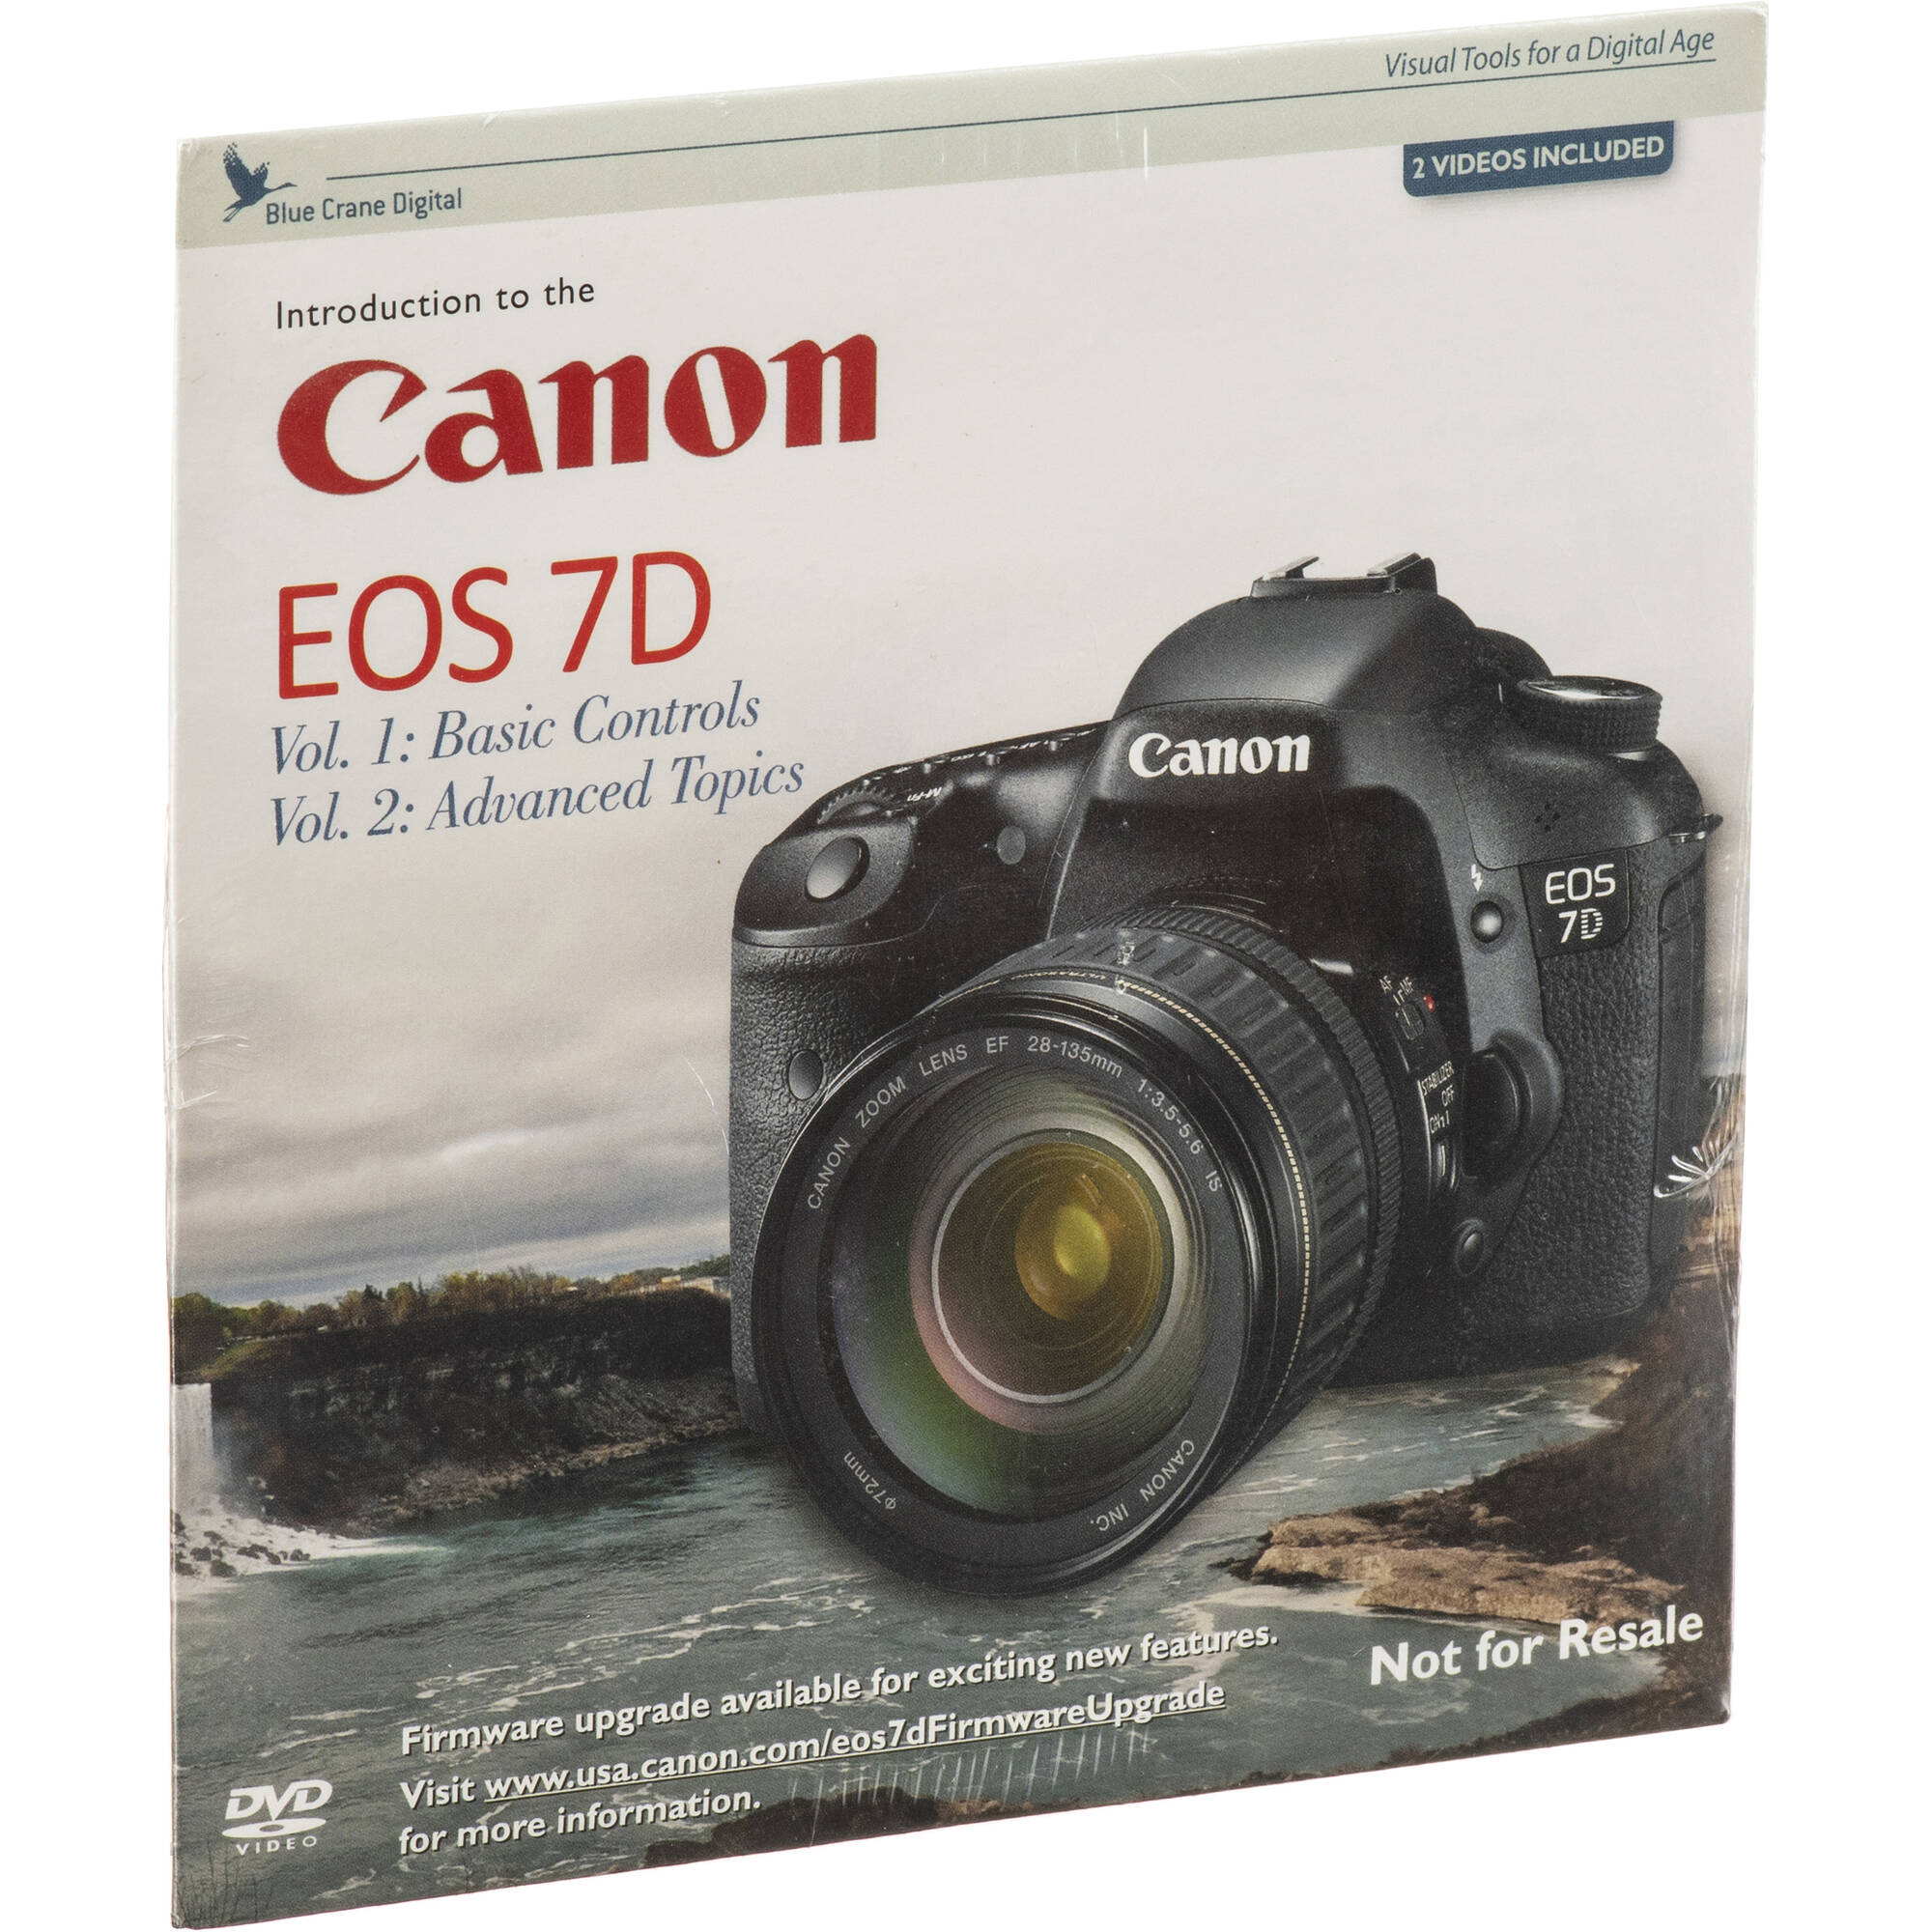 Canon DVD: Introduction to the Canon EOS 7D